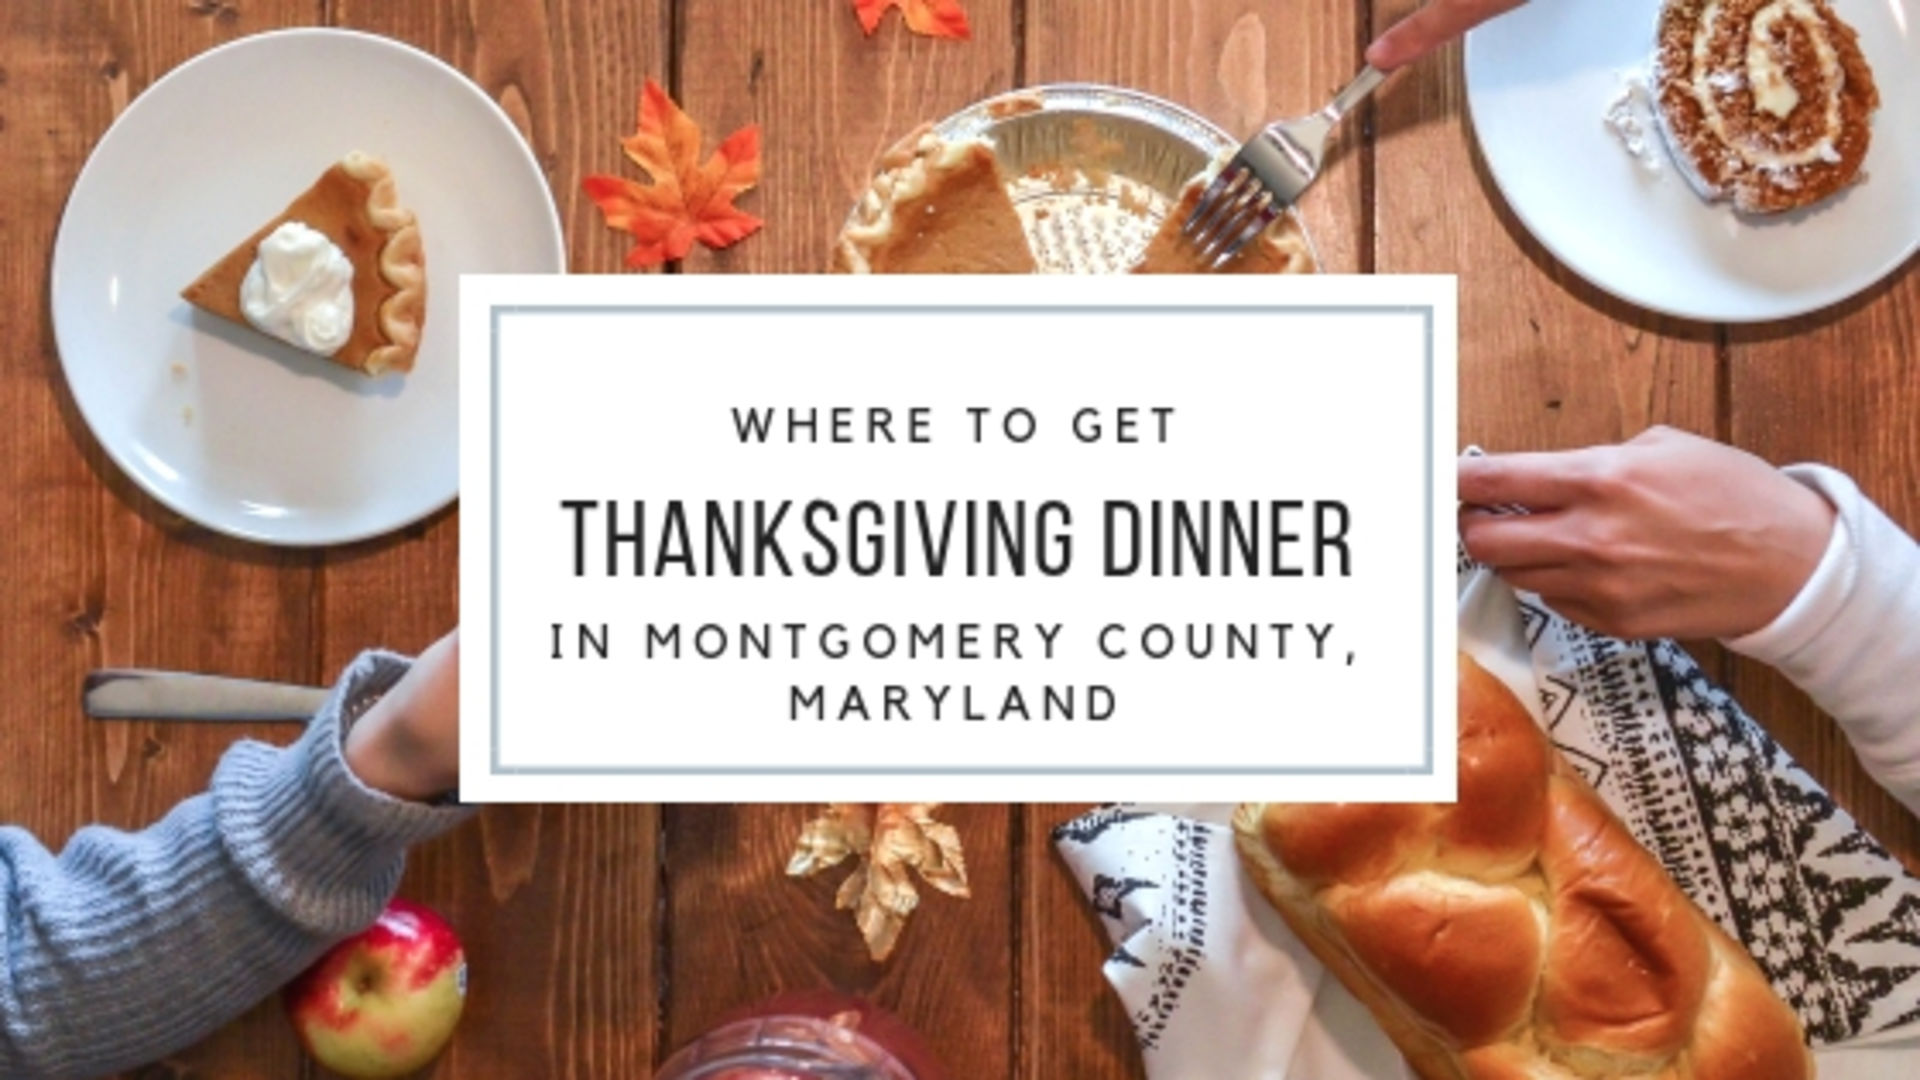 Where To Get Thanksgiving Dinner In Montgomery County Maryland